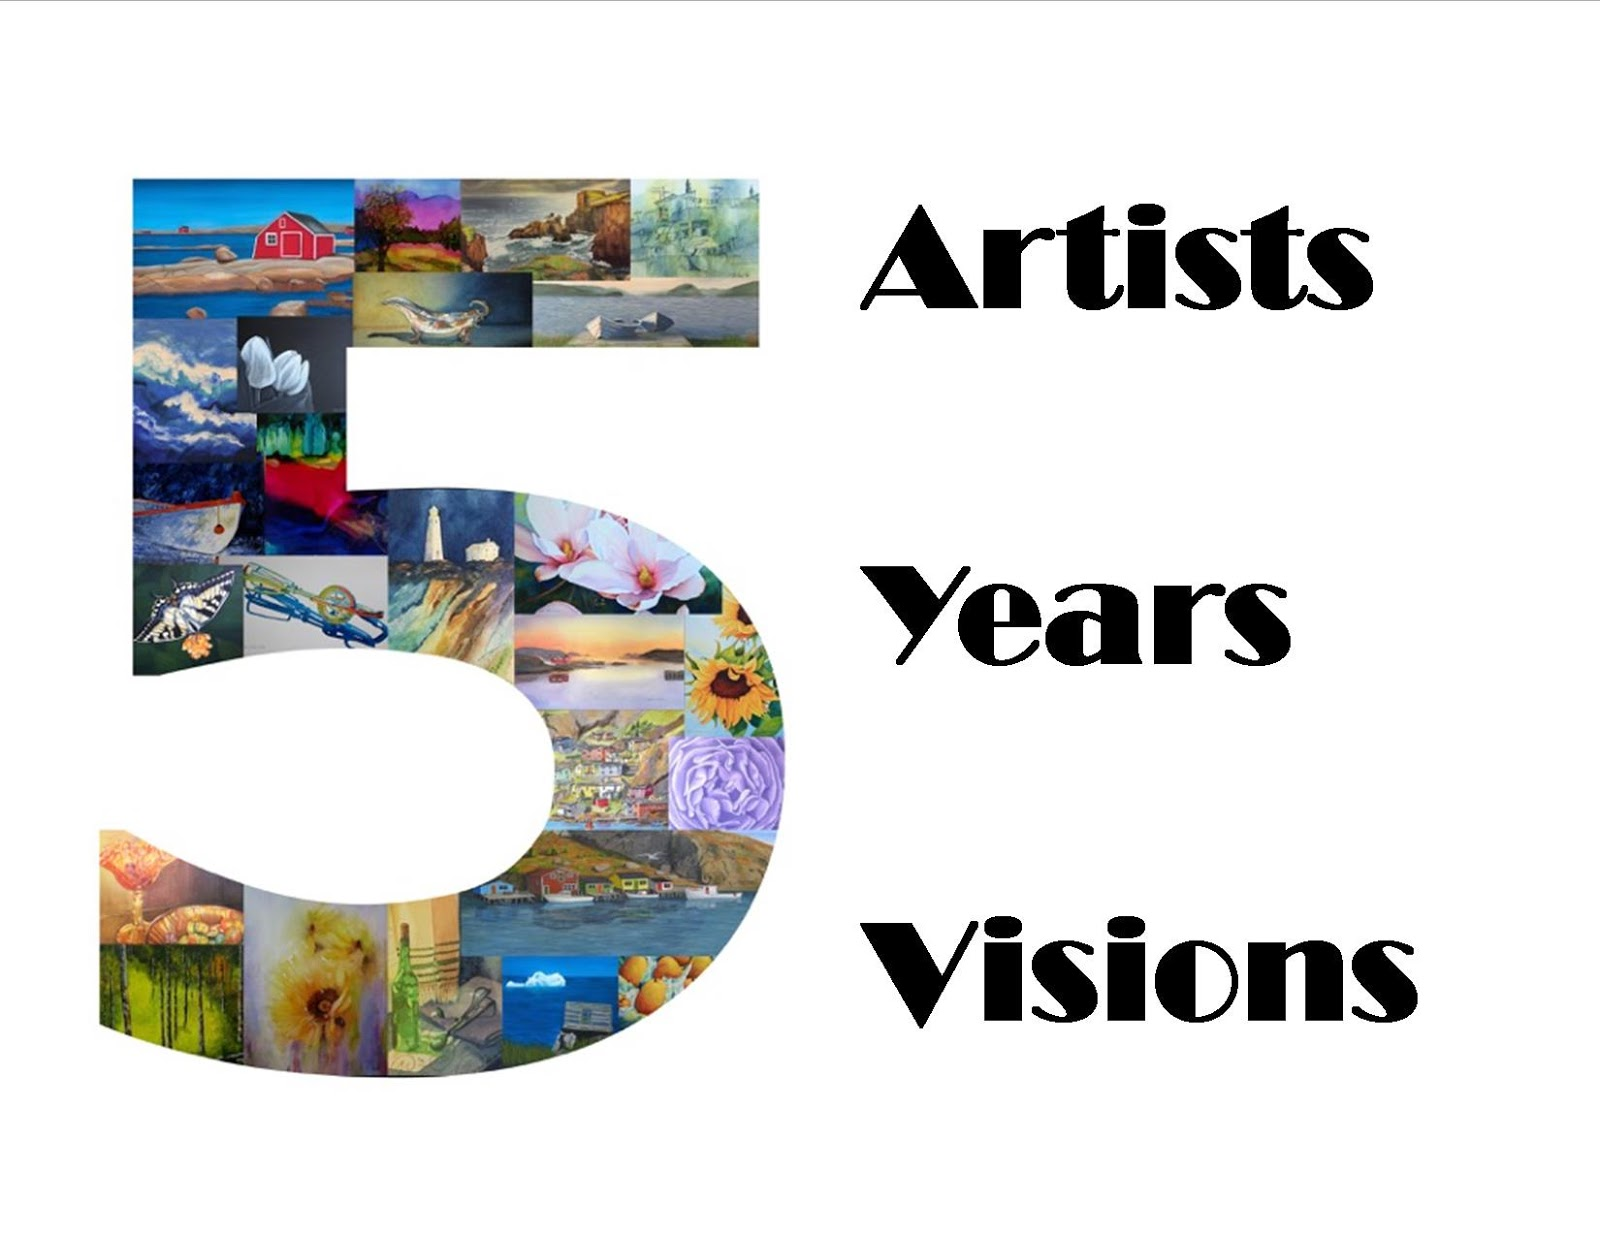 Arts Northeast: Our 5th Anniversary Exhibit & Sale